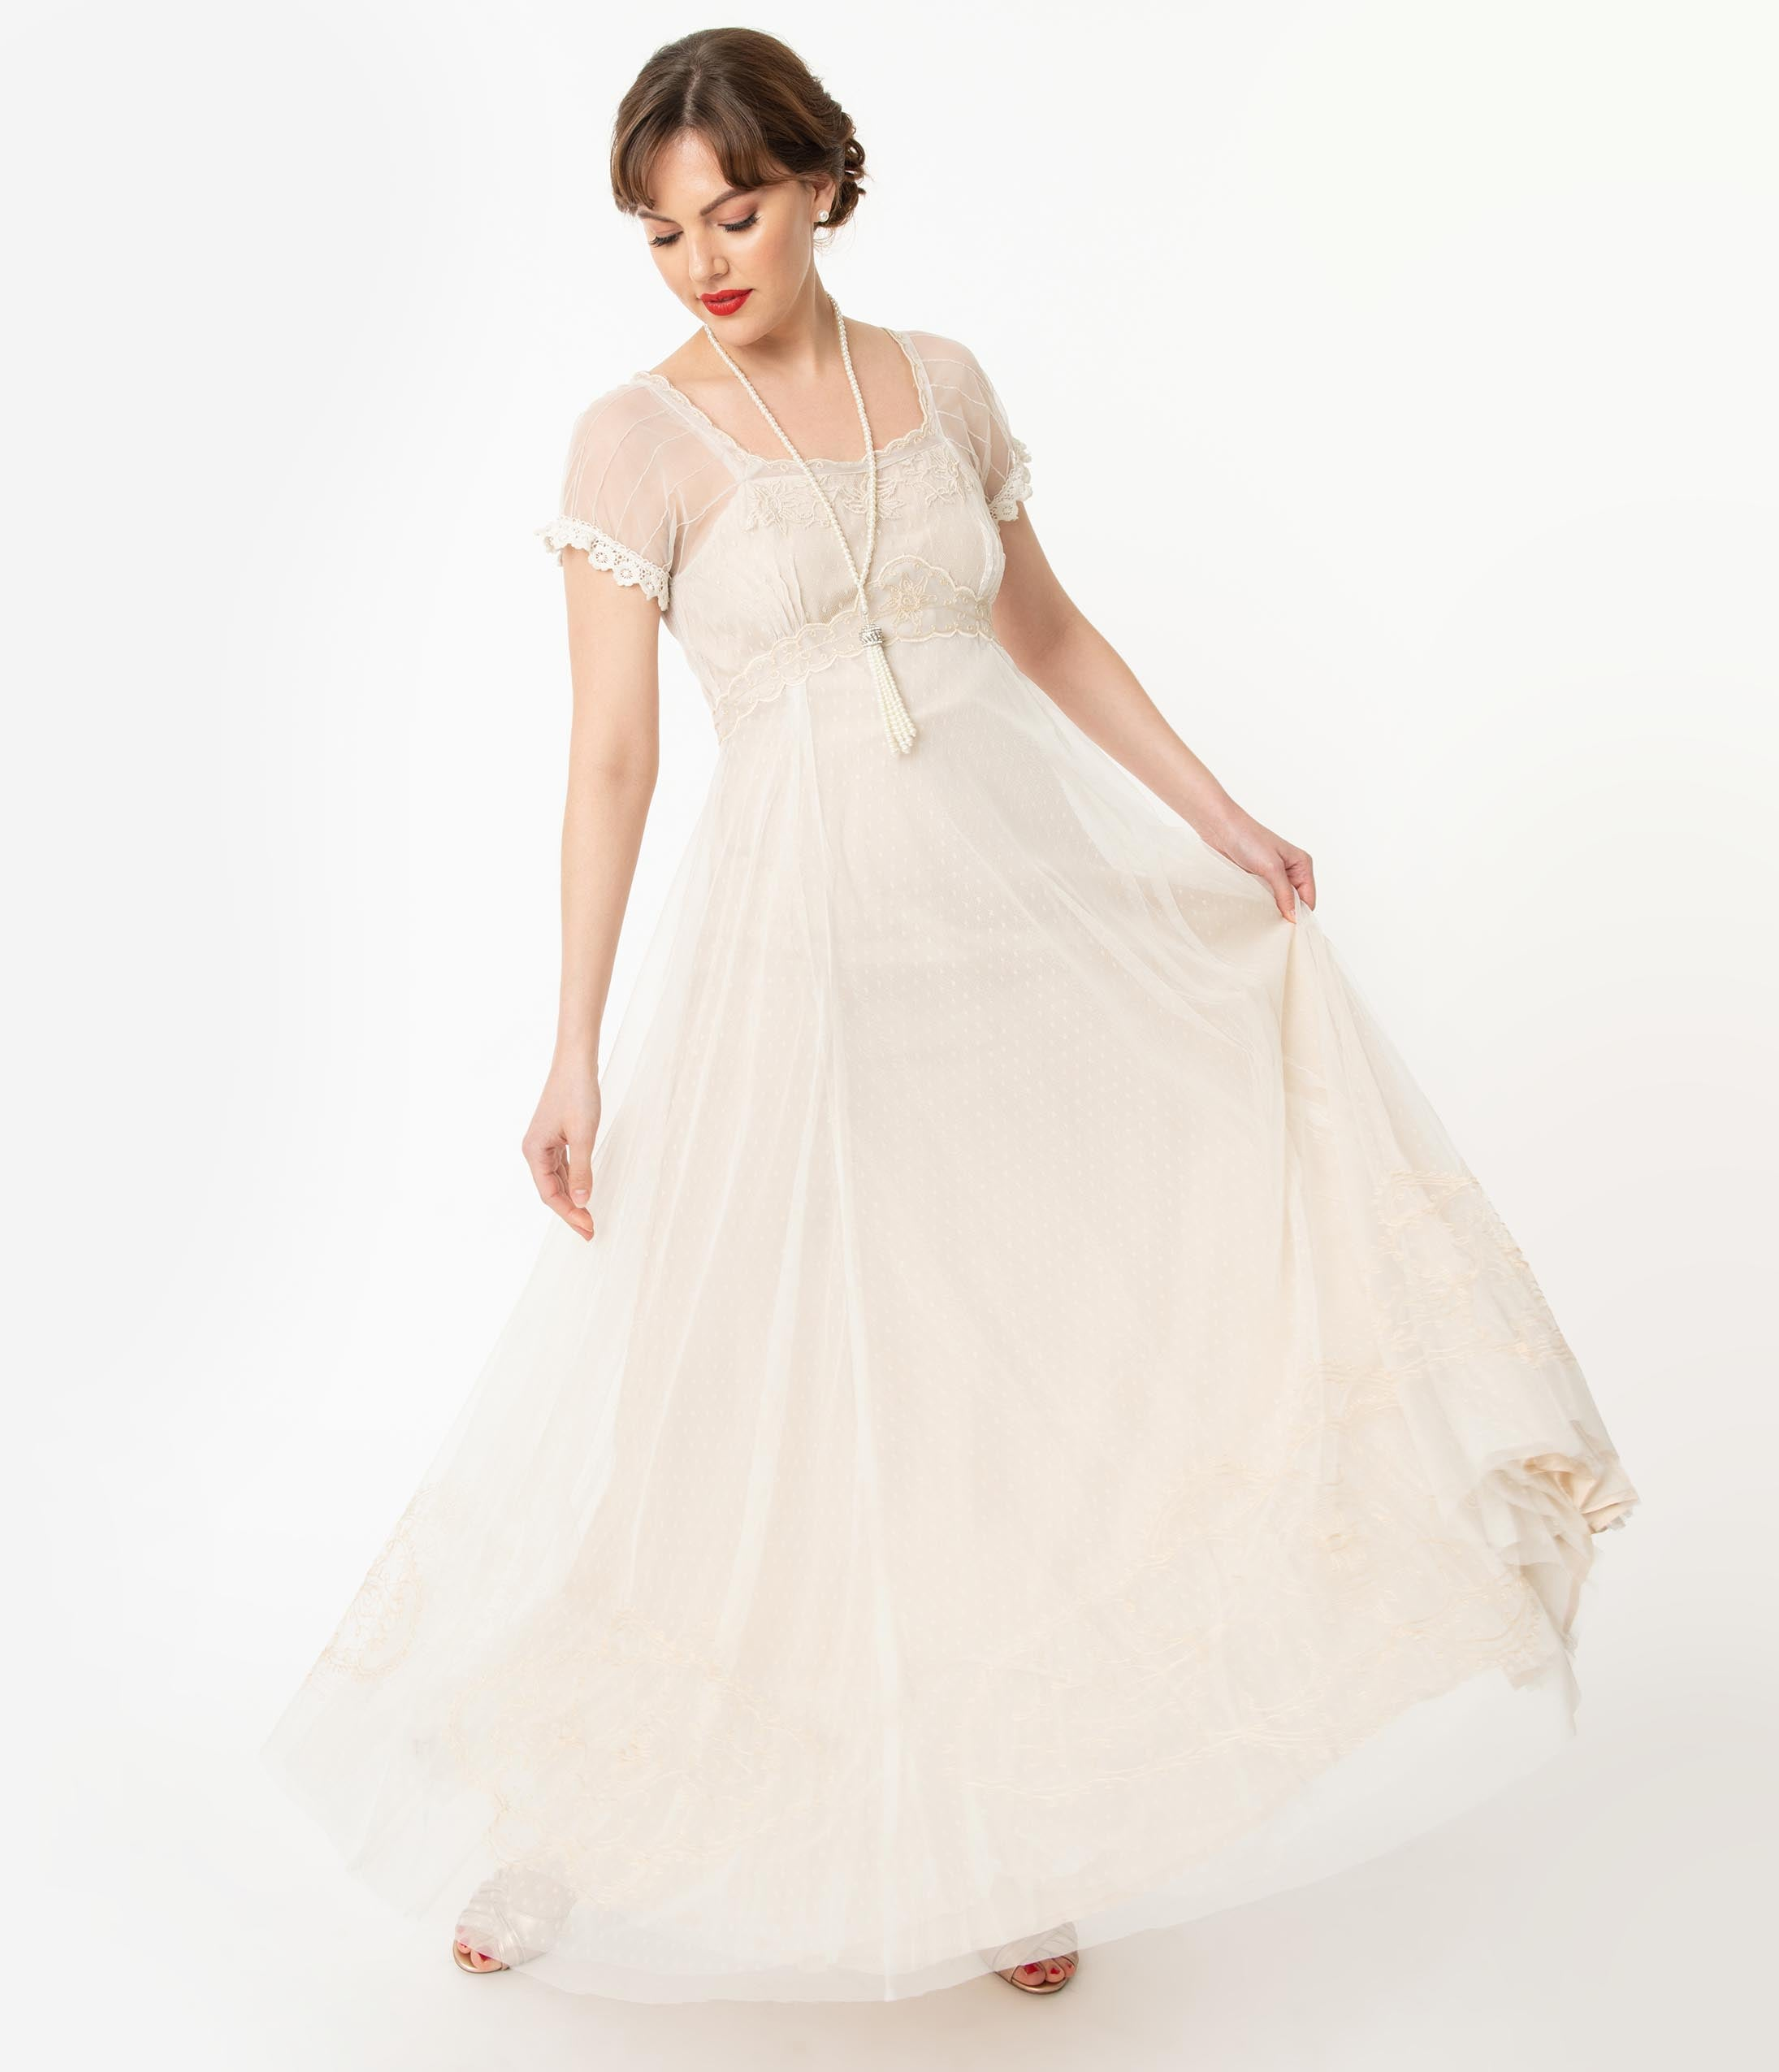 1920s Wedding Dresses- Art Deco Wedding Dress, Gatsby Wedding Dress Vintage Style Ivory  Beige Edwardian Wedding Dress $378.00 AT vintagedancer.com